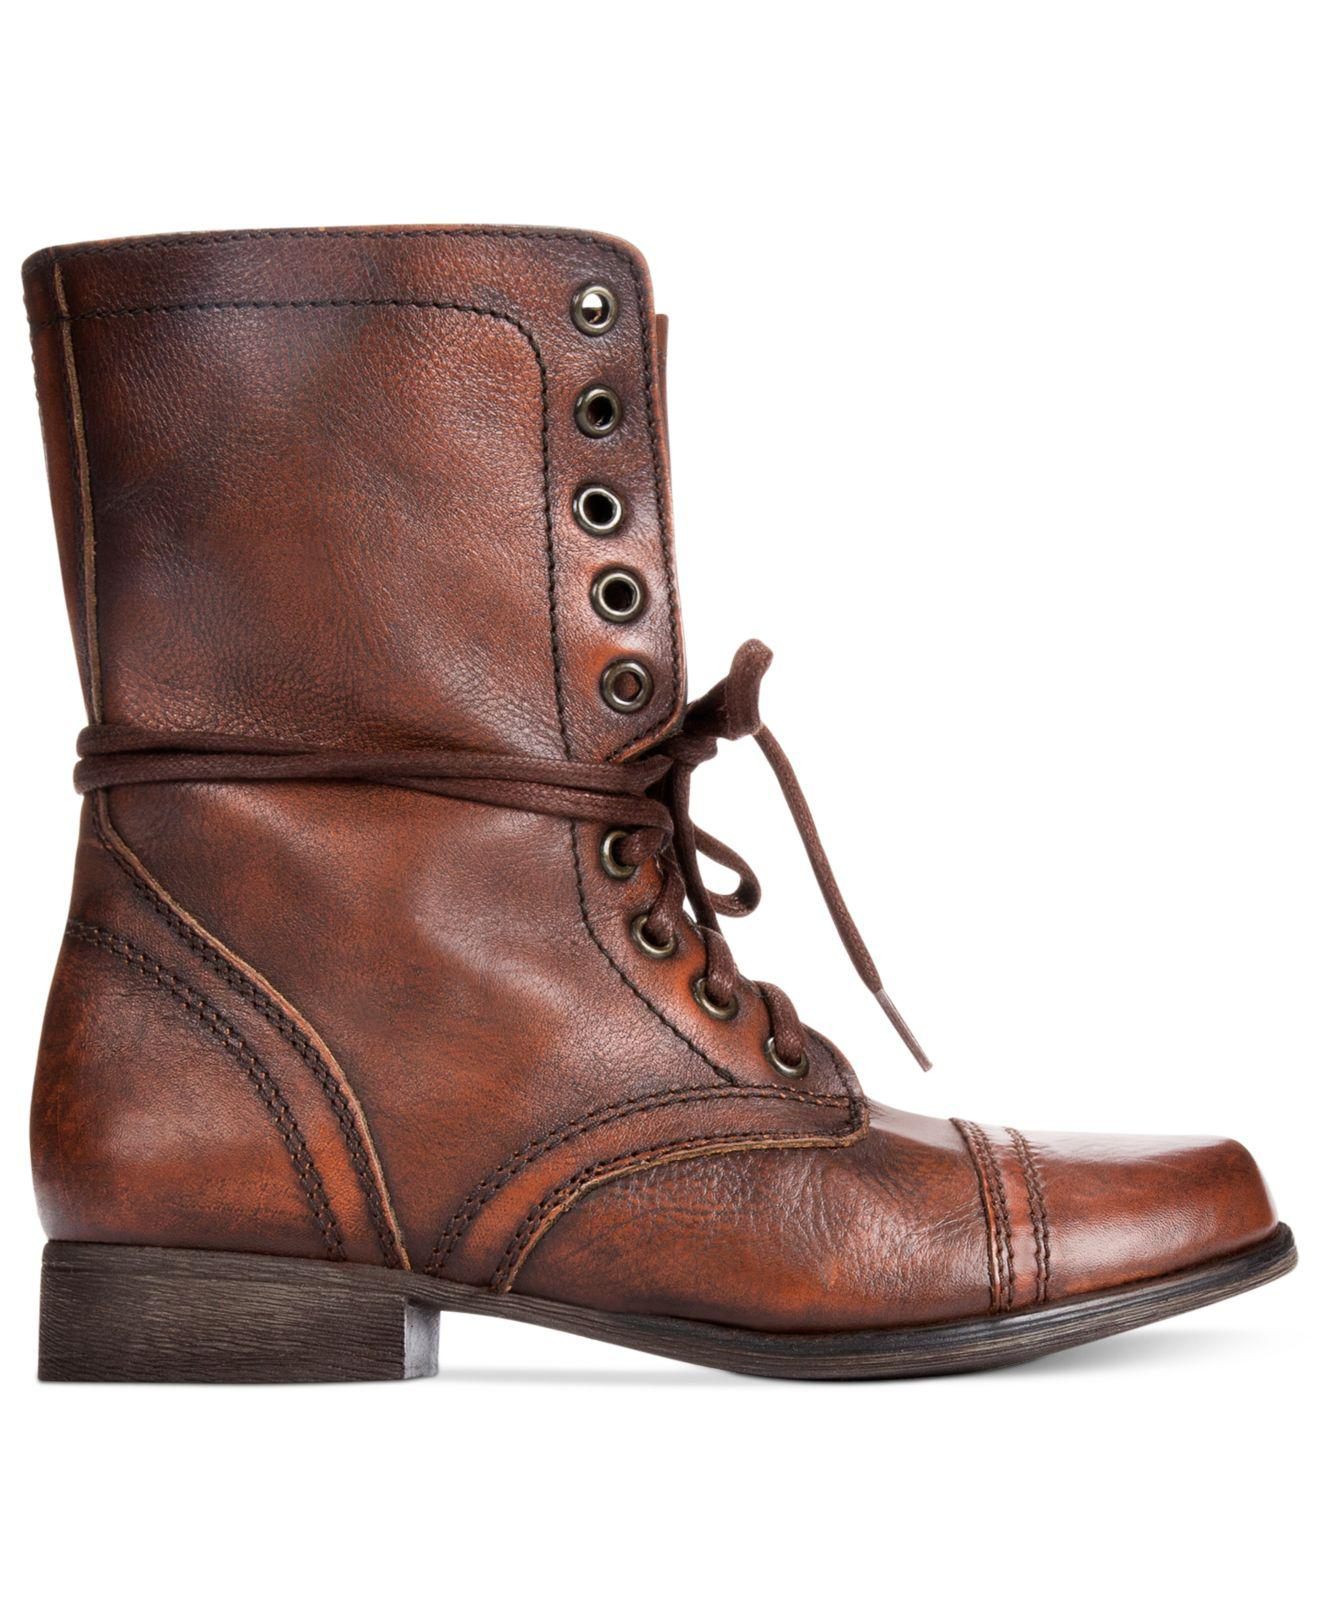 4540af36cb7 Lyst - Steve Madden Troopa Boots in Brown